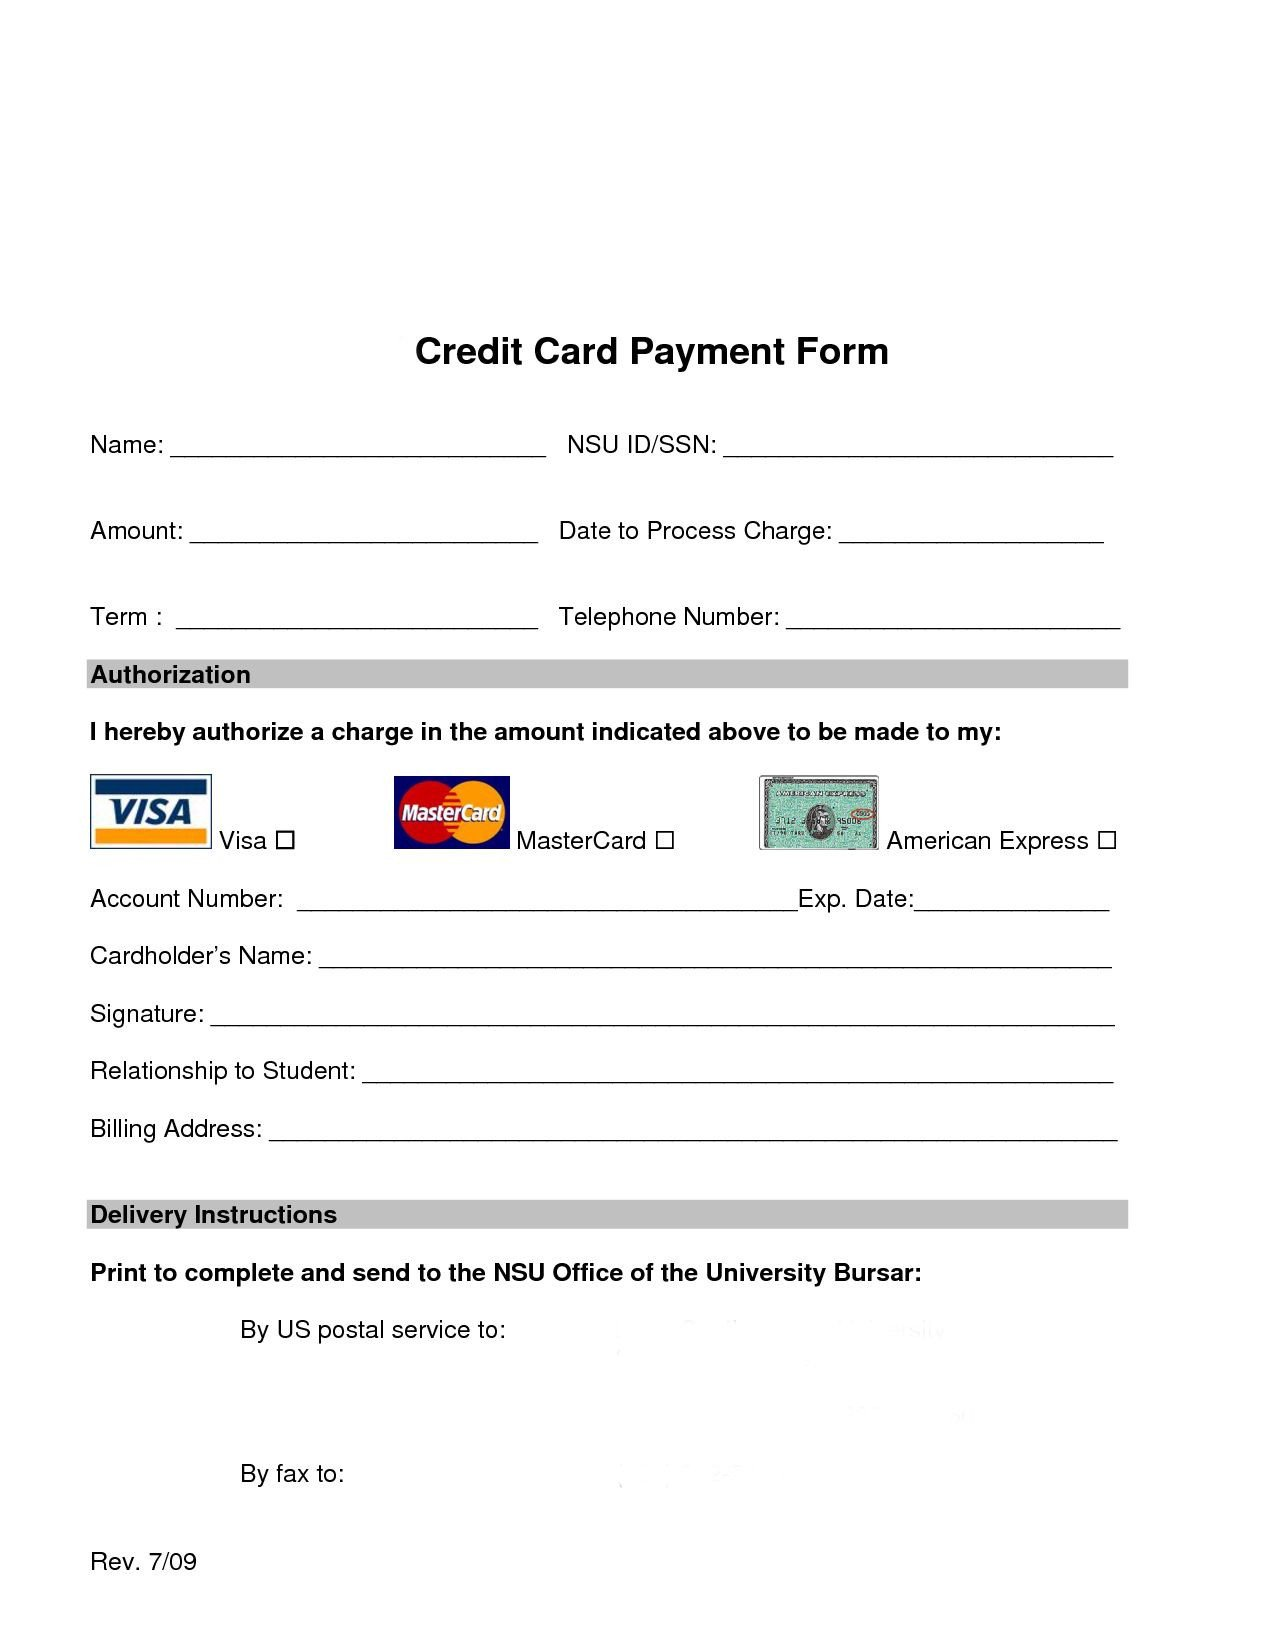 Credit Card form Template Credit Card Processing form Web Design